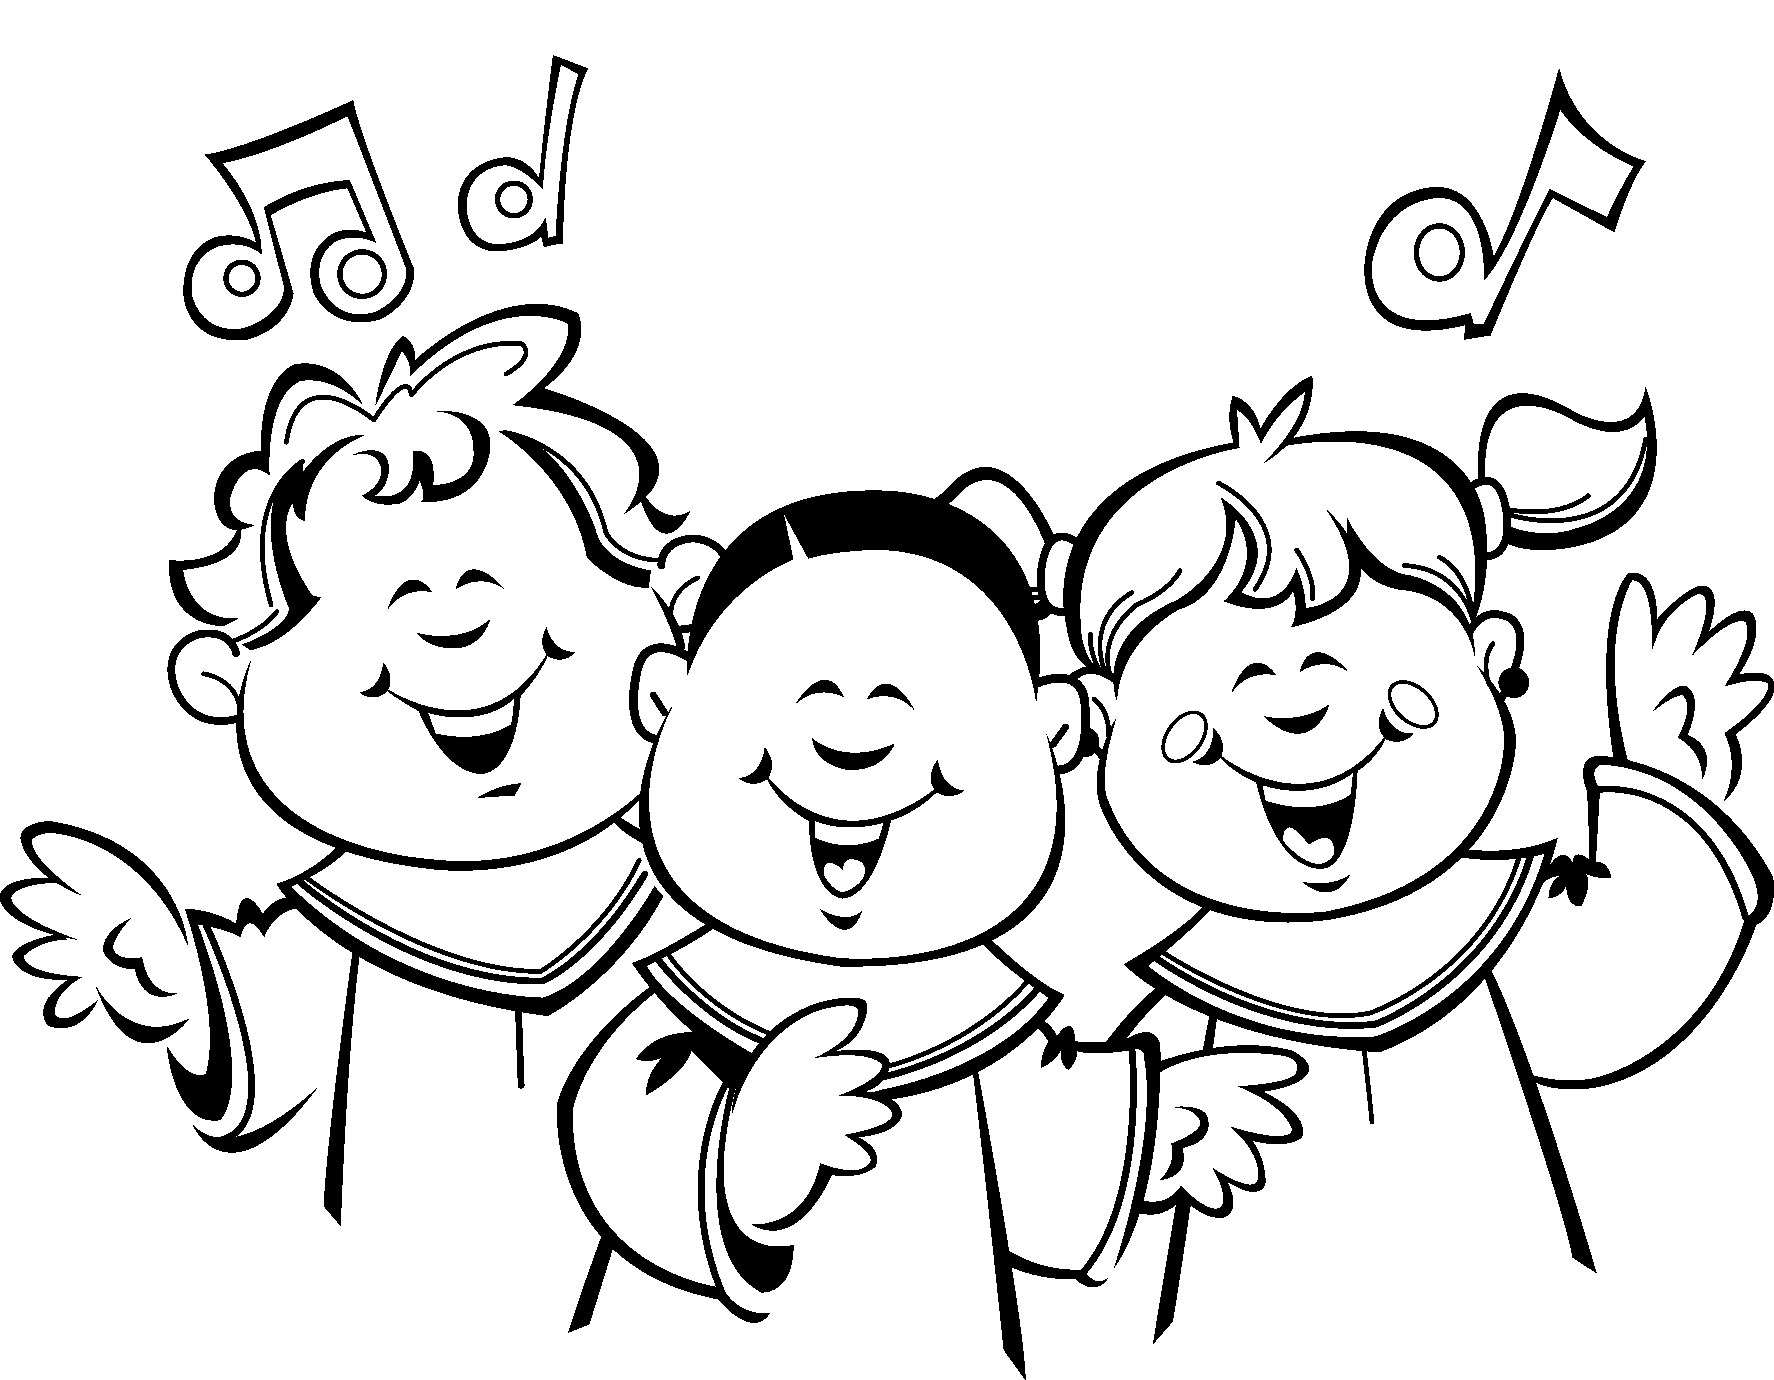 Free Choir Clipart Download Free Clip Art Free Clip Art On Clipart Library